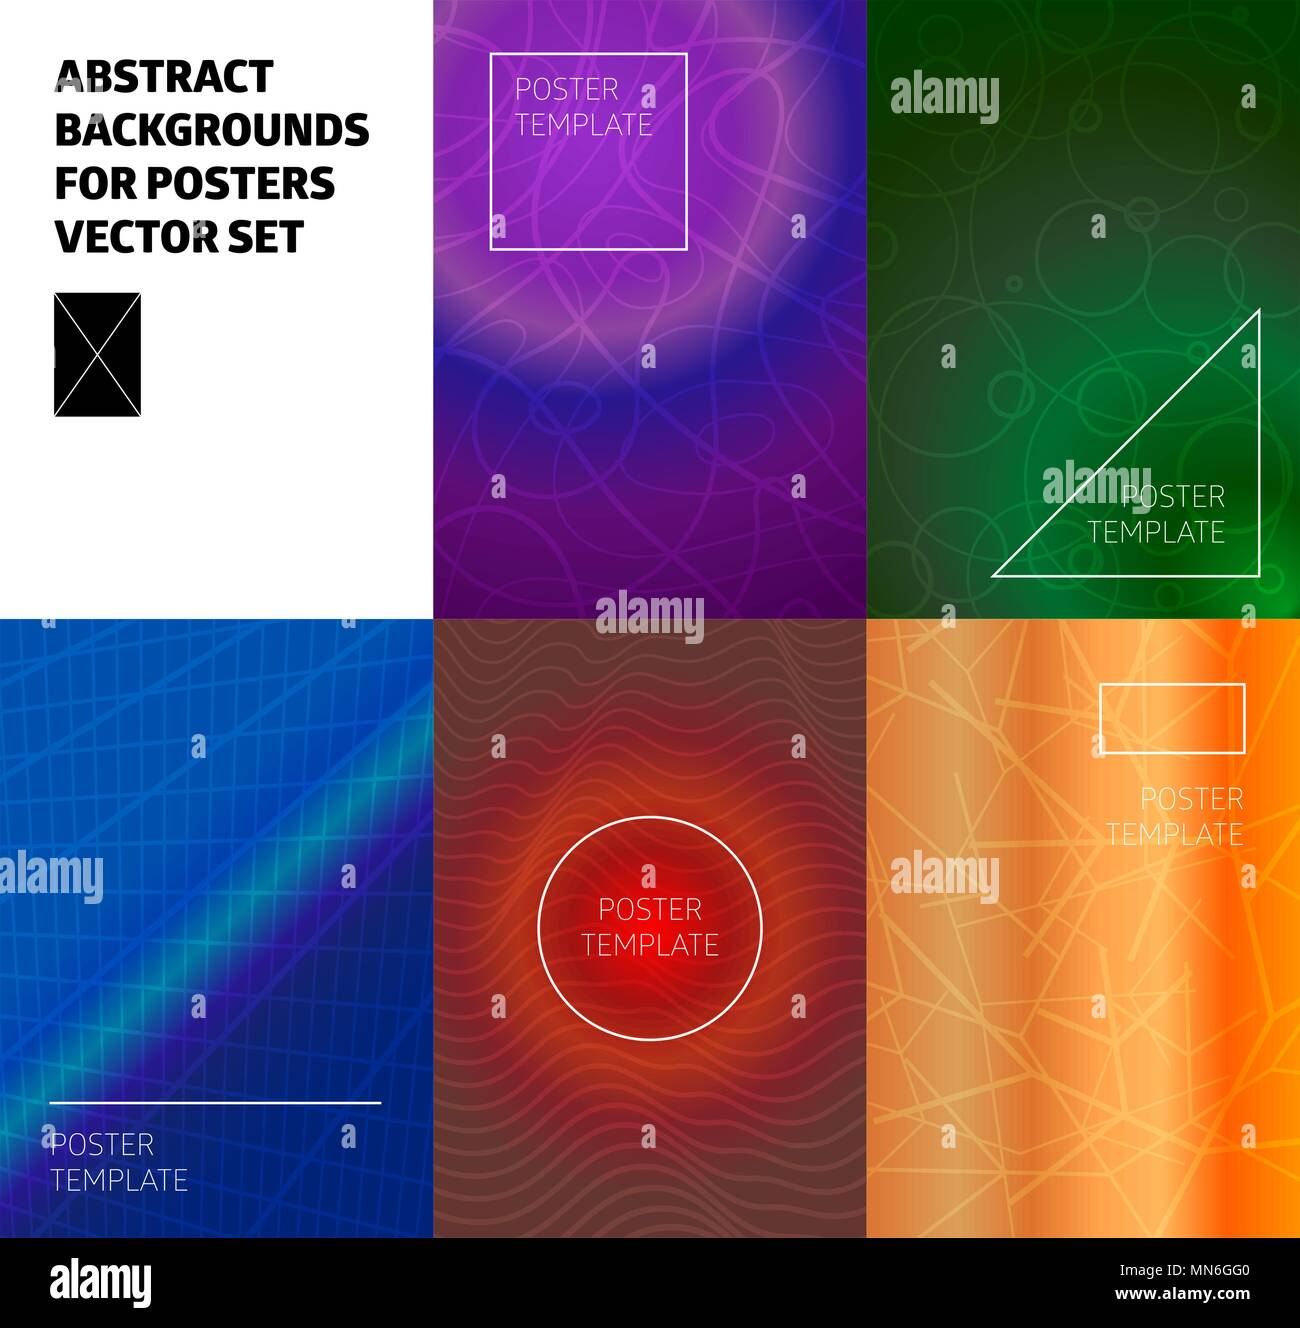 minimal vector covers design cool halftone gradients future poster